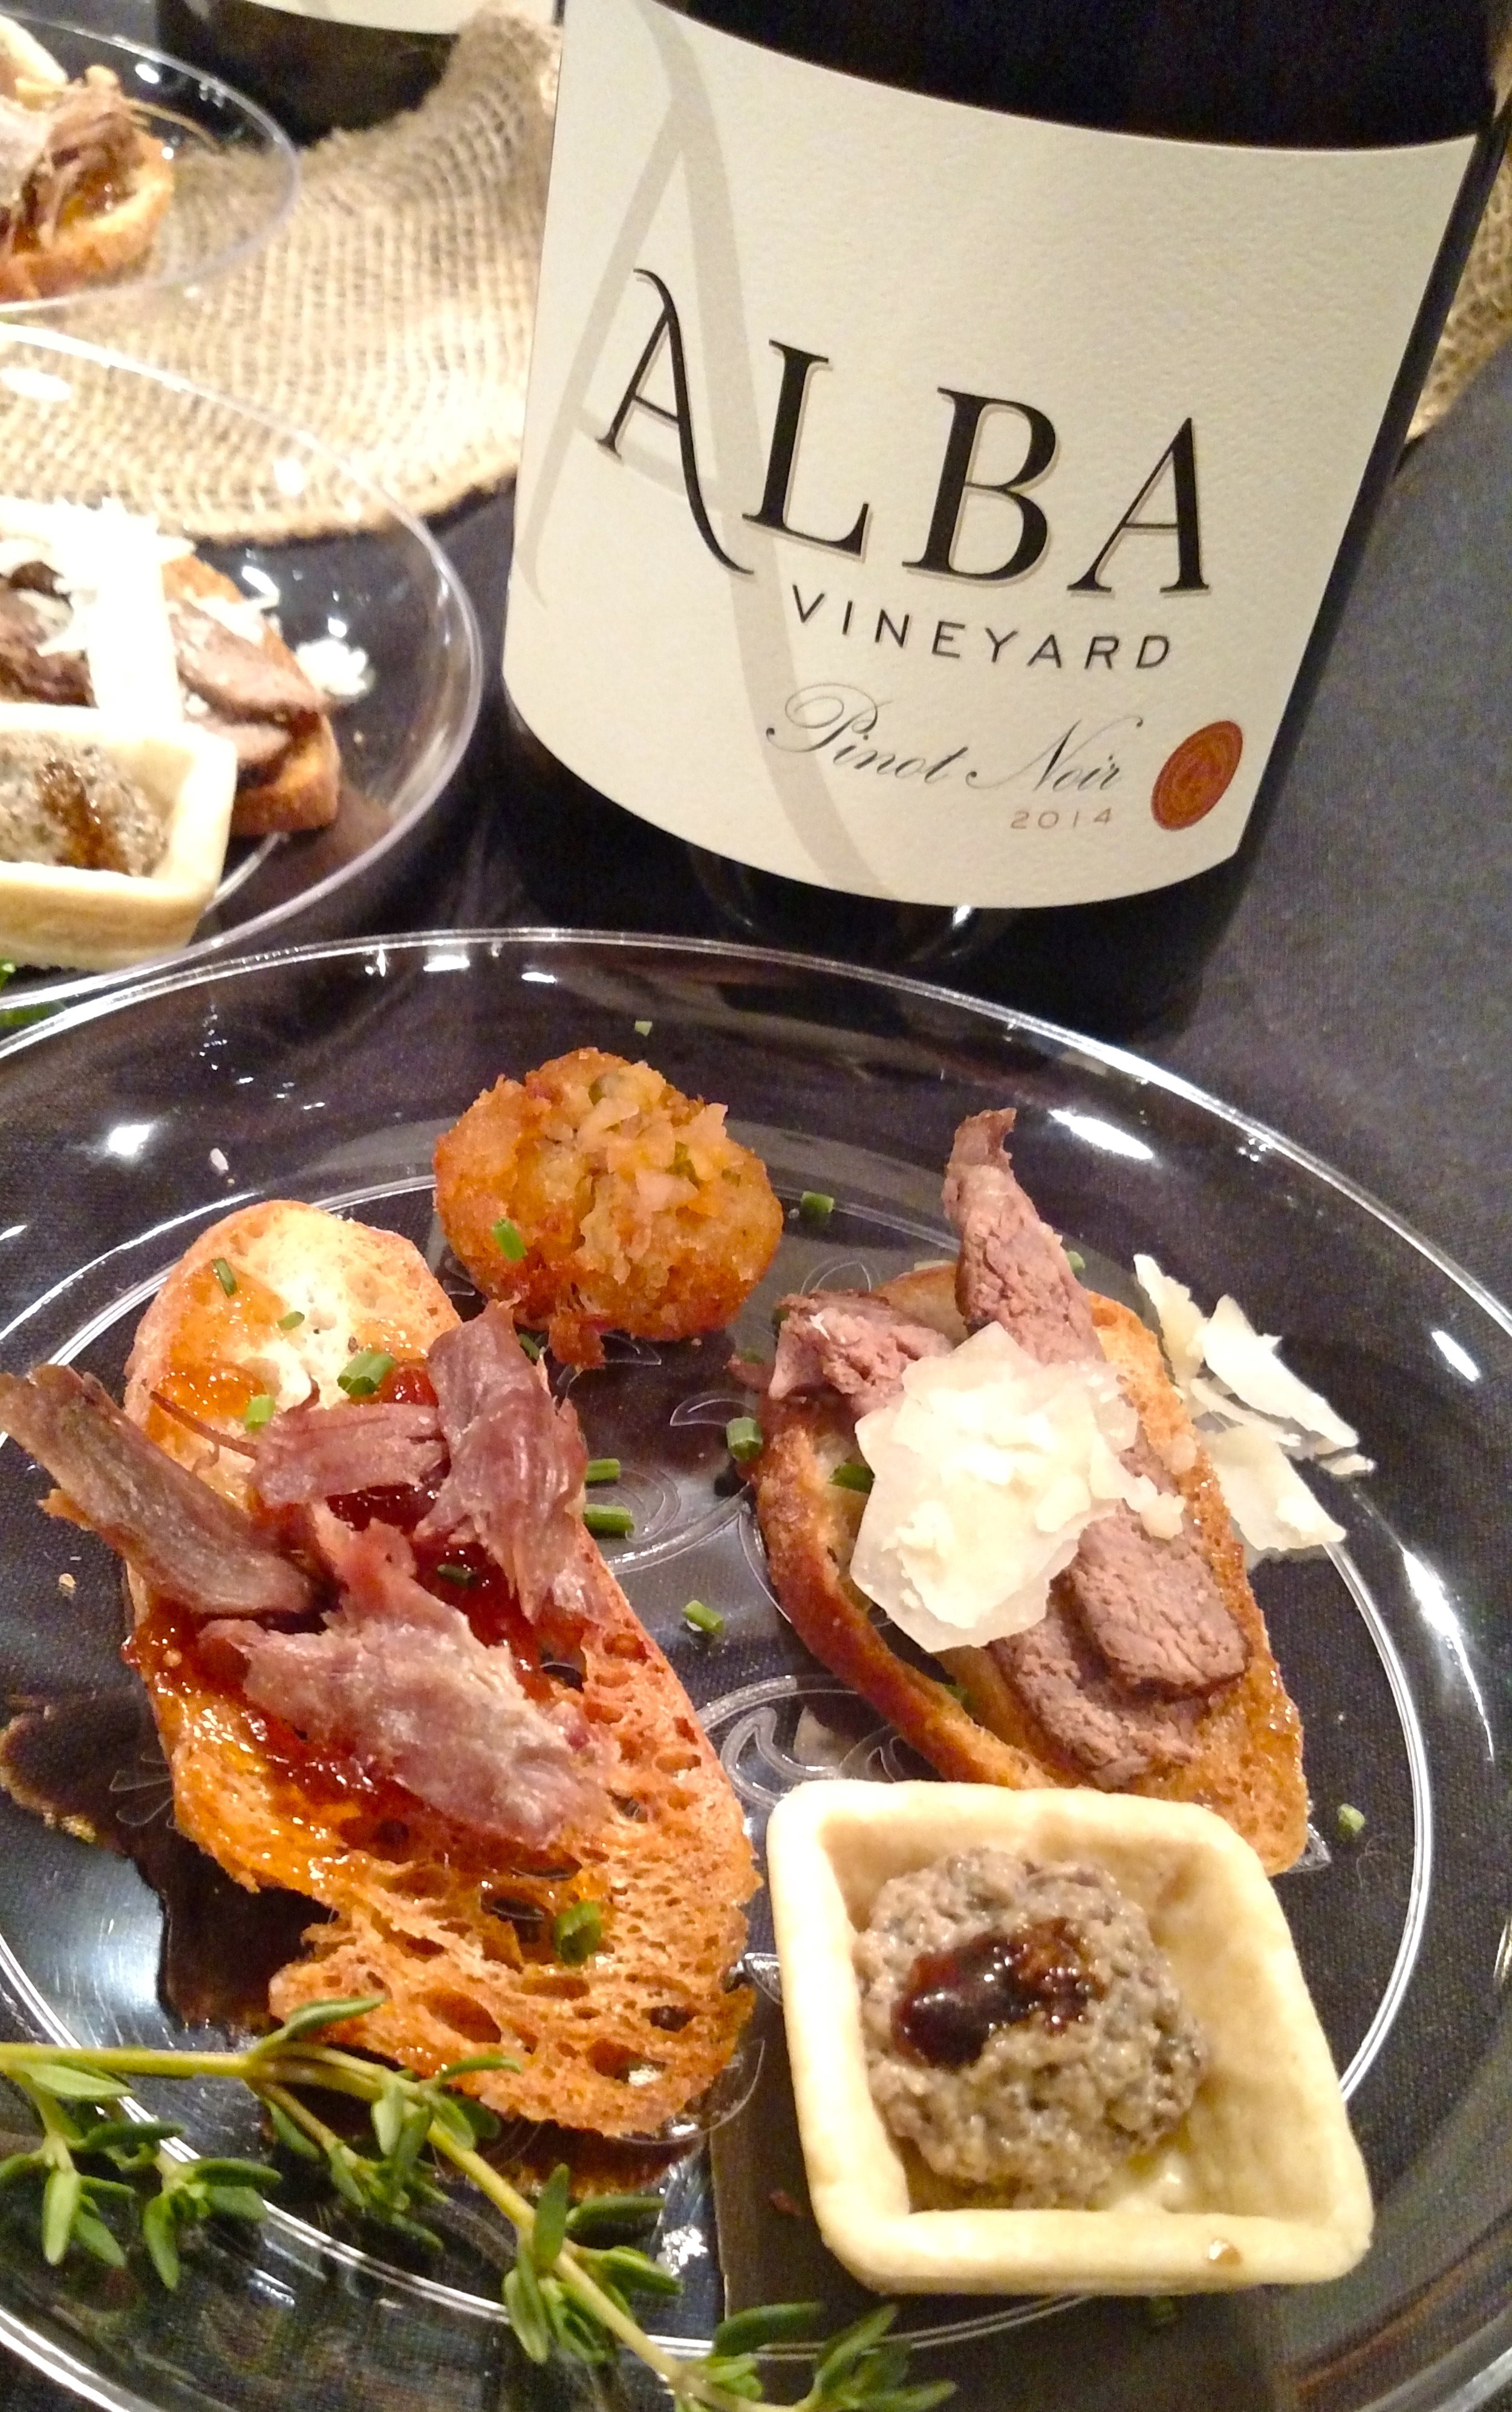 Alba Vineyard & Winery- Sustainably growing estate quality grapes and crafting them into premium wines of exceptional value.